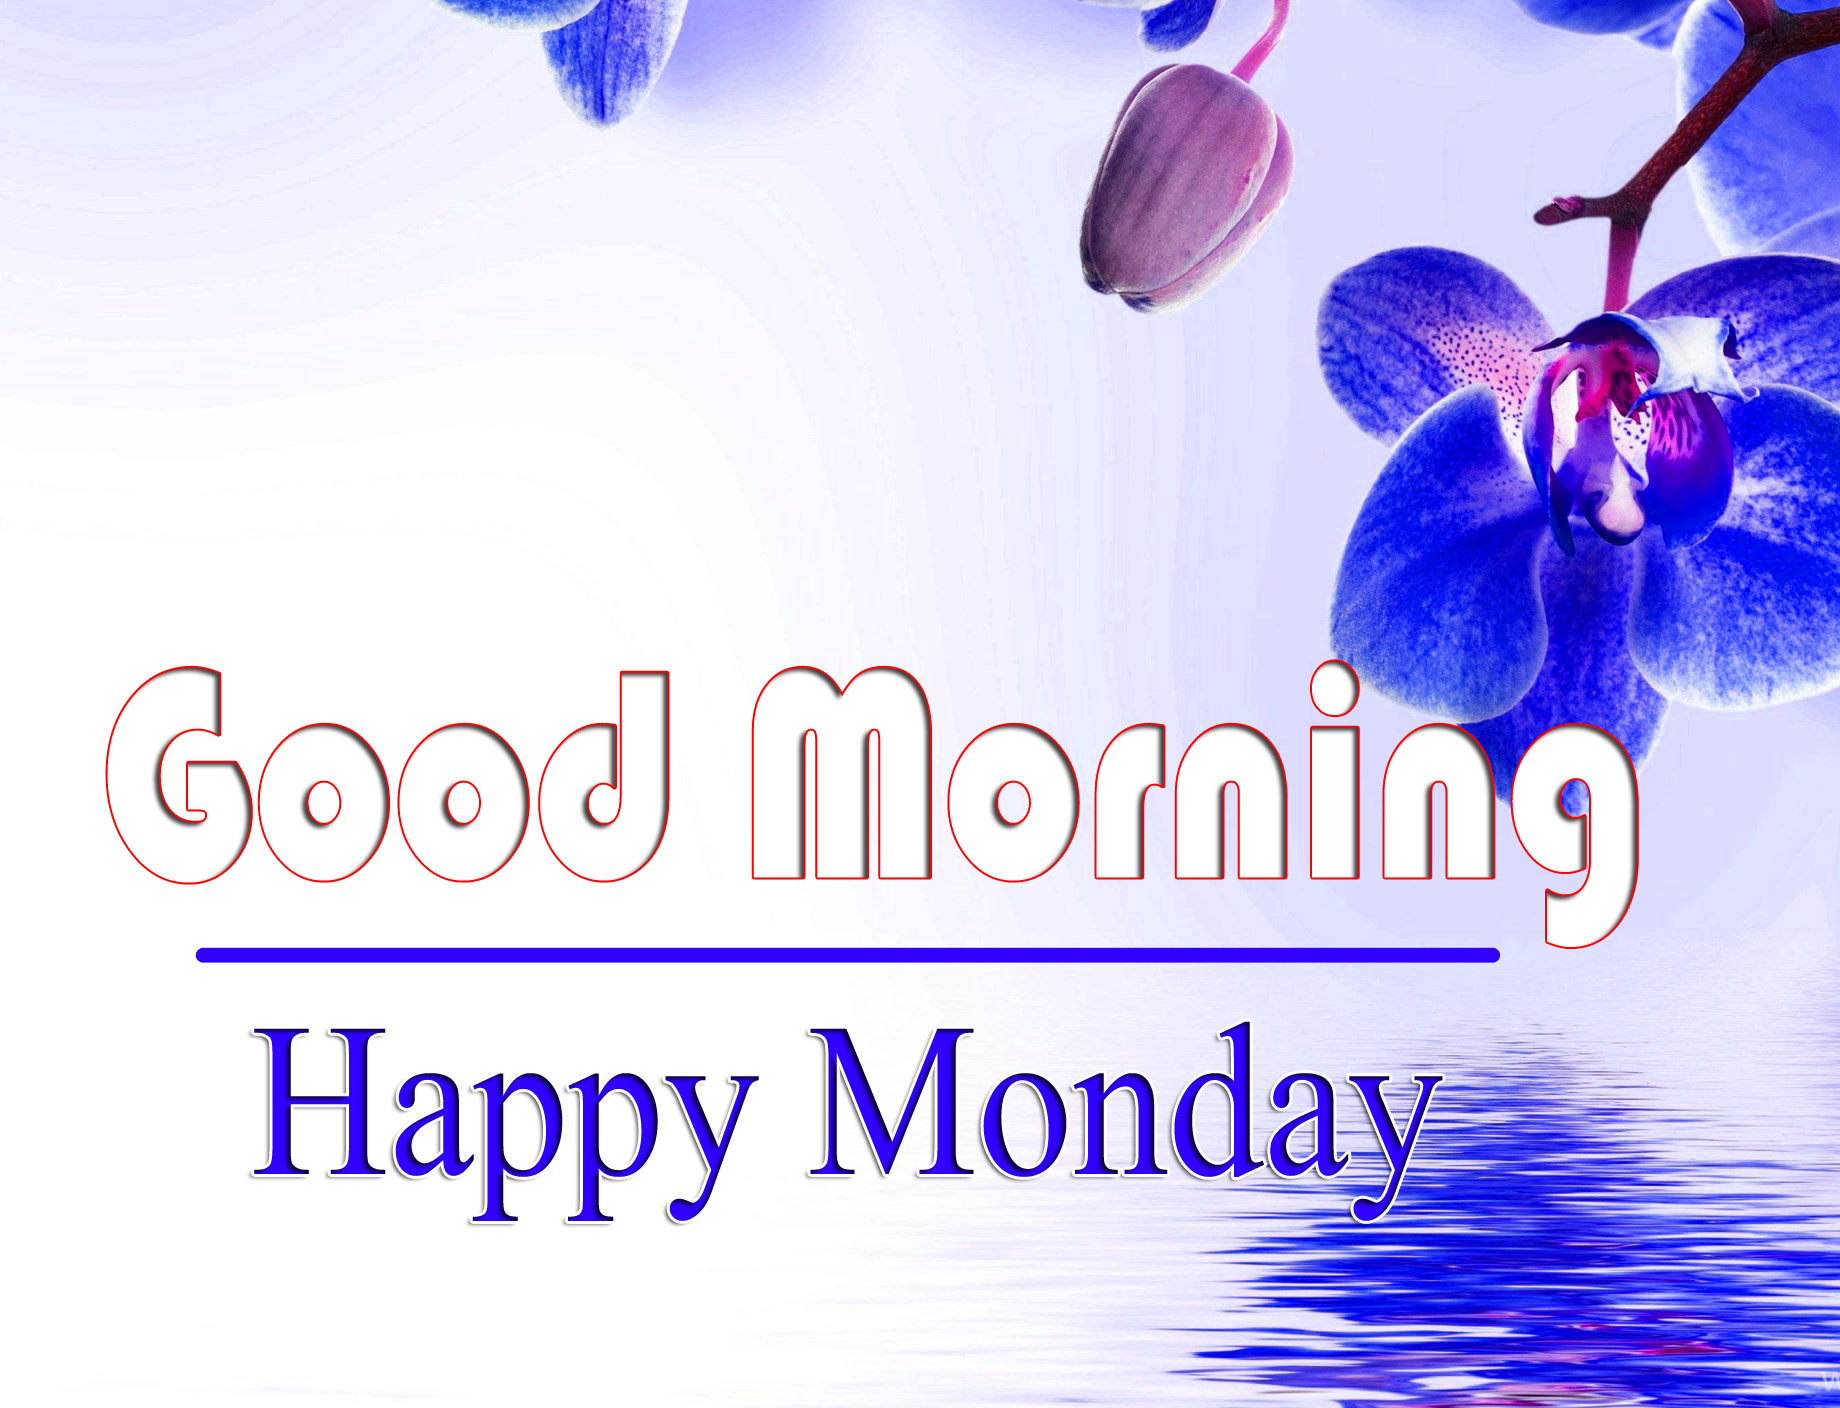 HD Free Quality Monday Good Morning Images 1